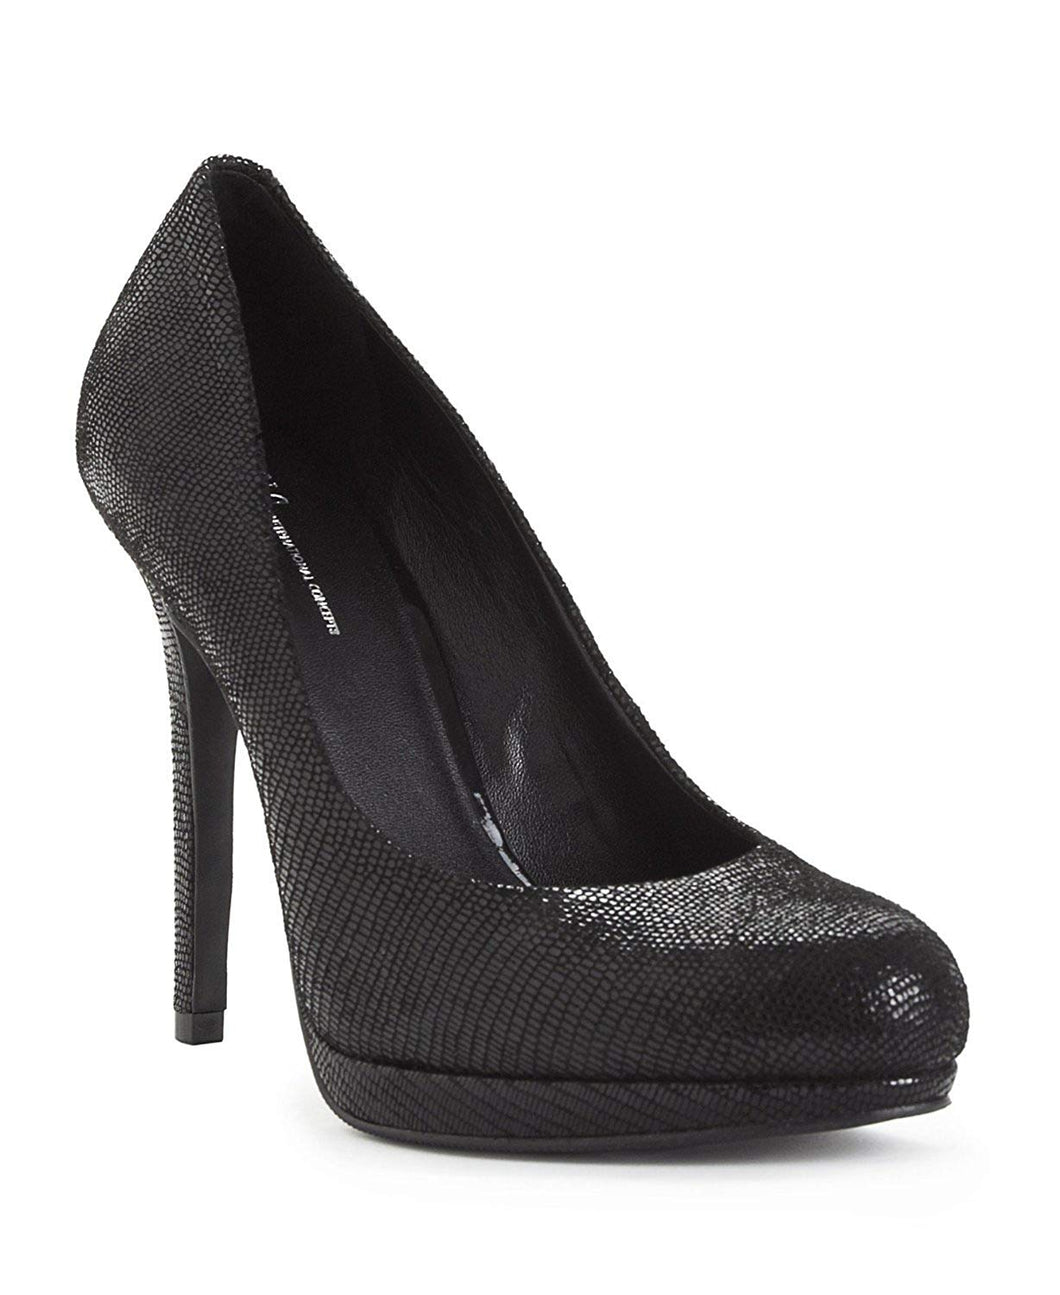 INC International Concepts Louie Women's Pump Shoes (9.5, Black)